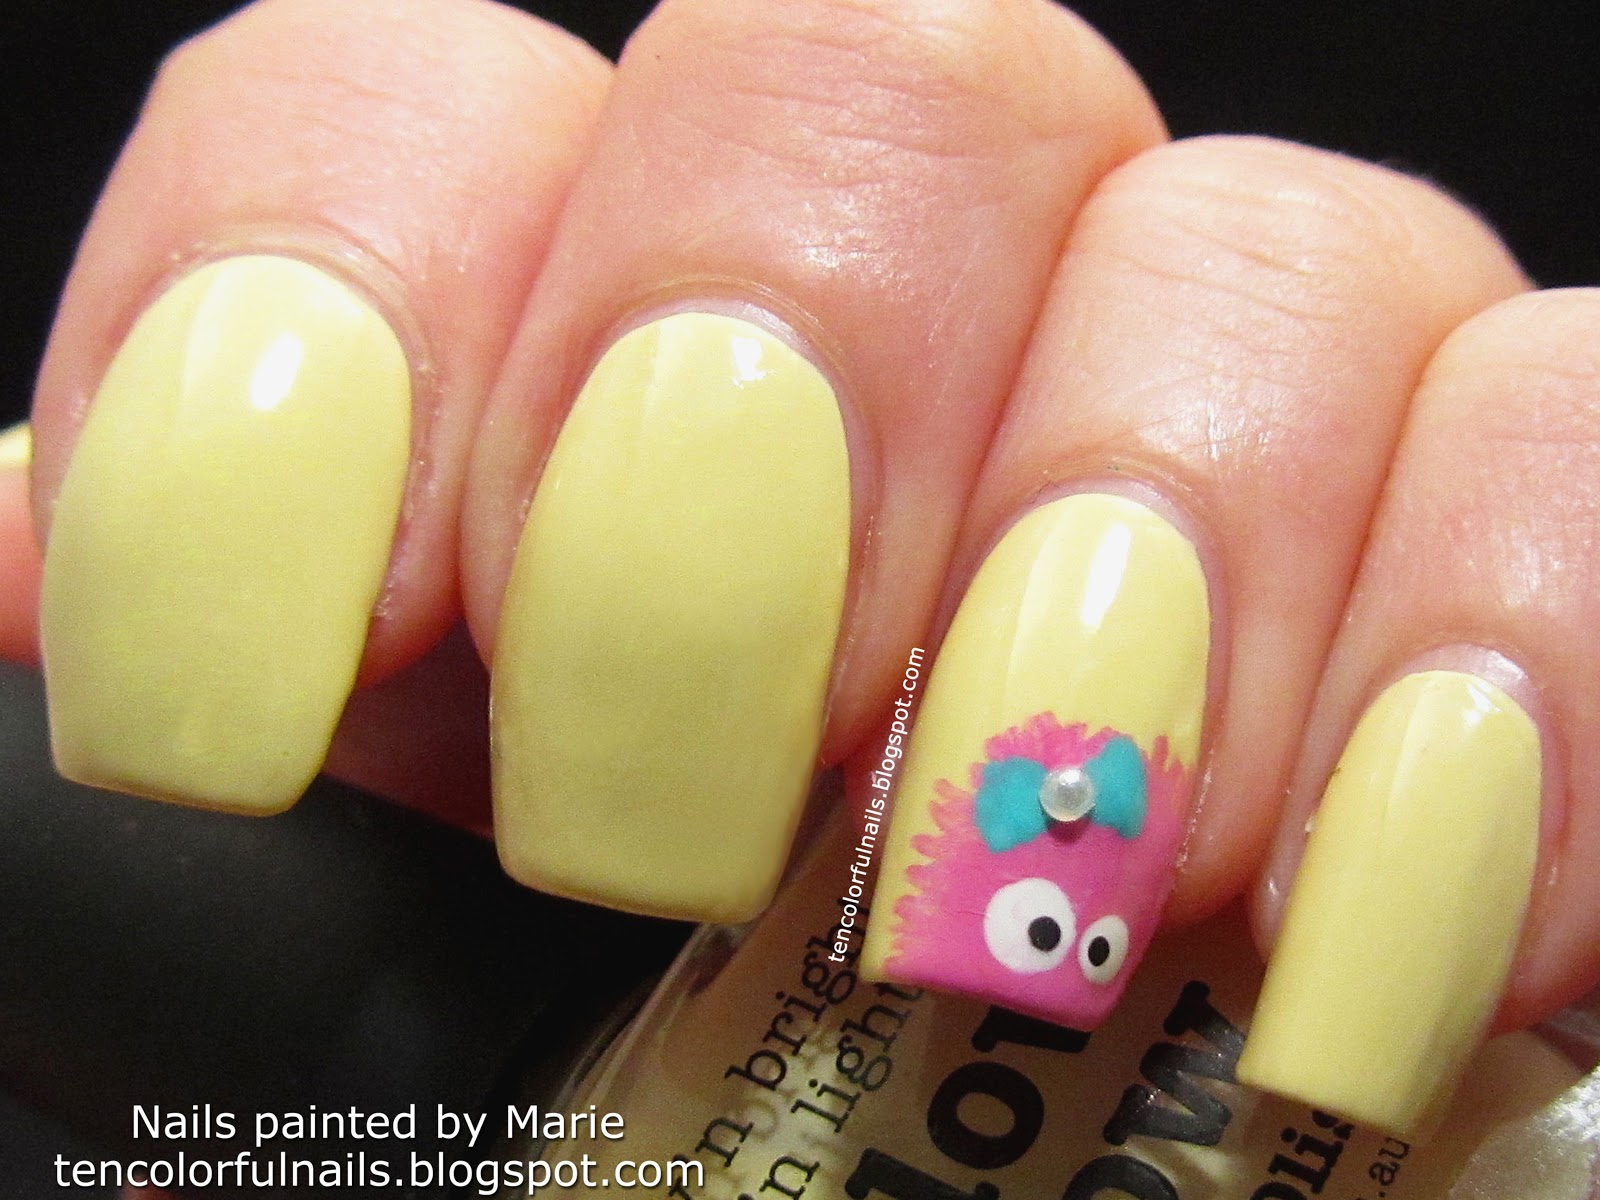 Ten Colorful Nails Girly Monster Nail Art Tutorial